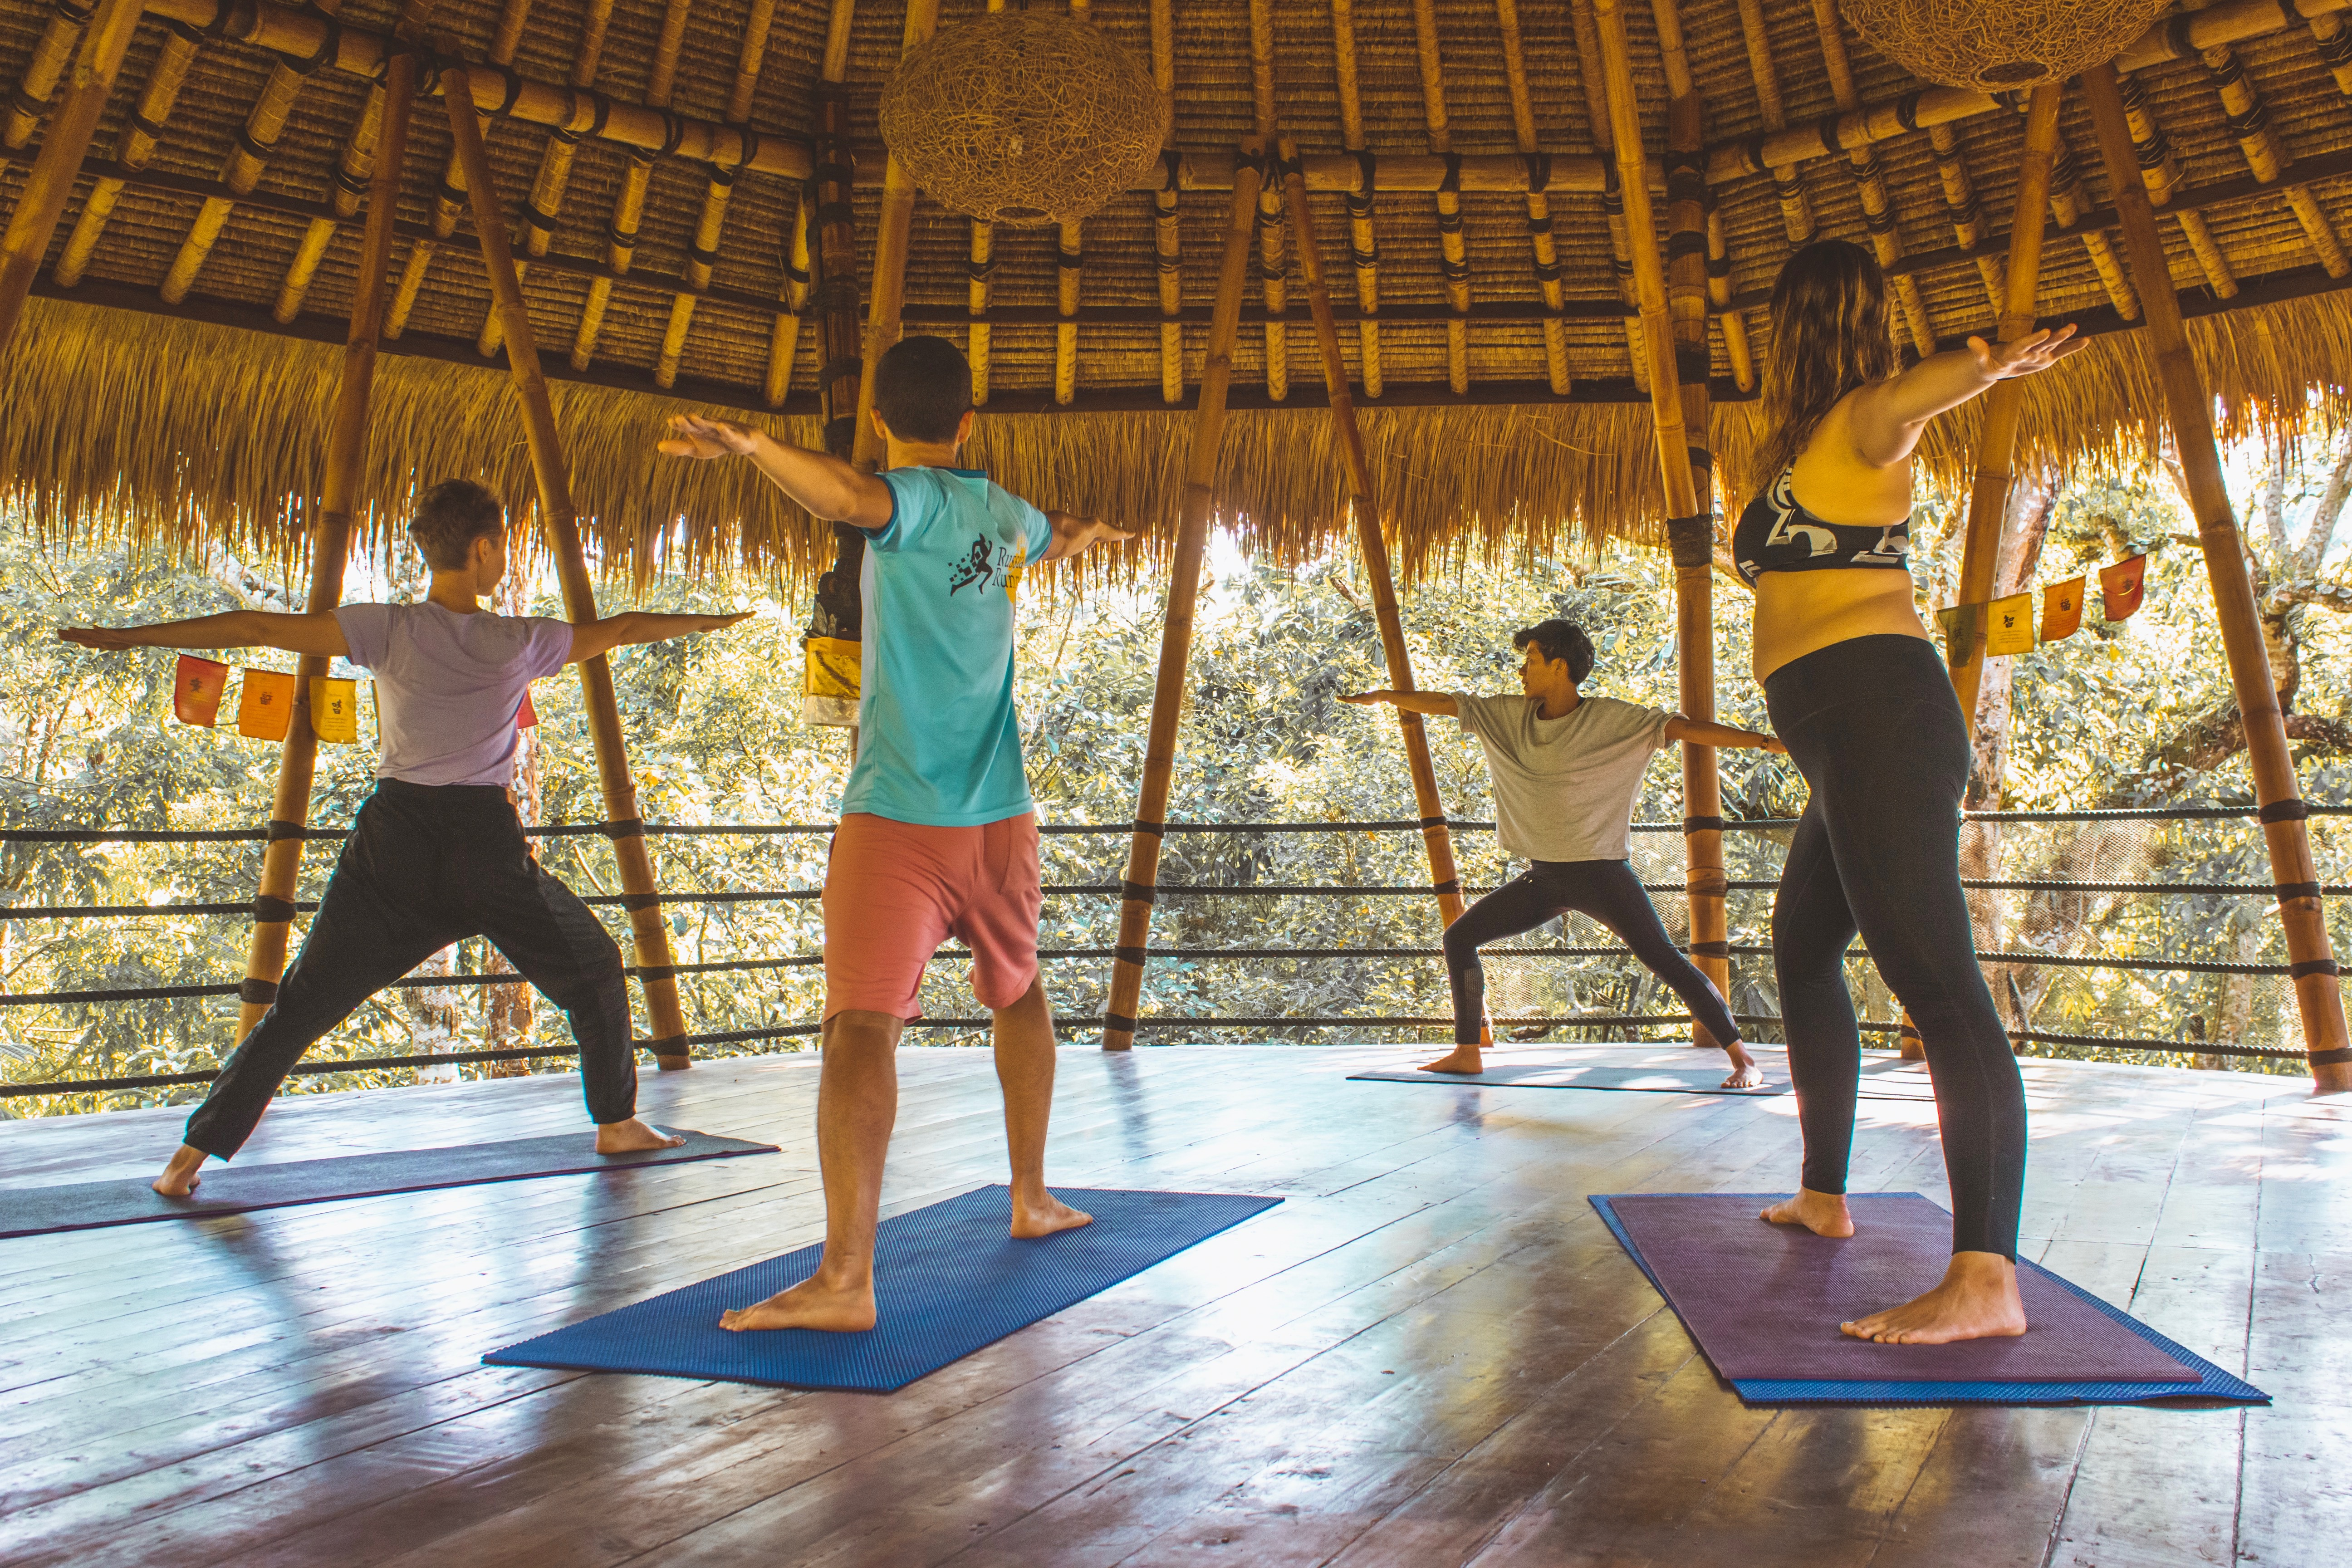 Practing yoga on the yoga palapa at Bali Eco-Lodge